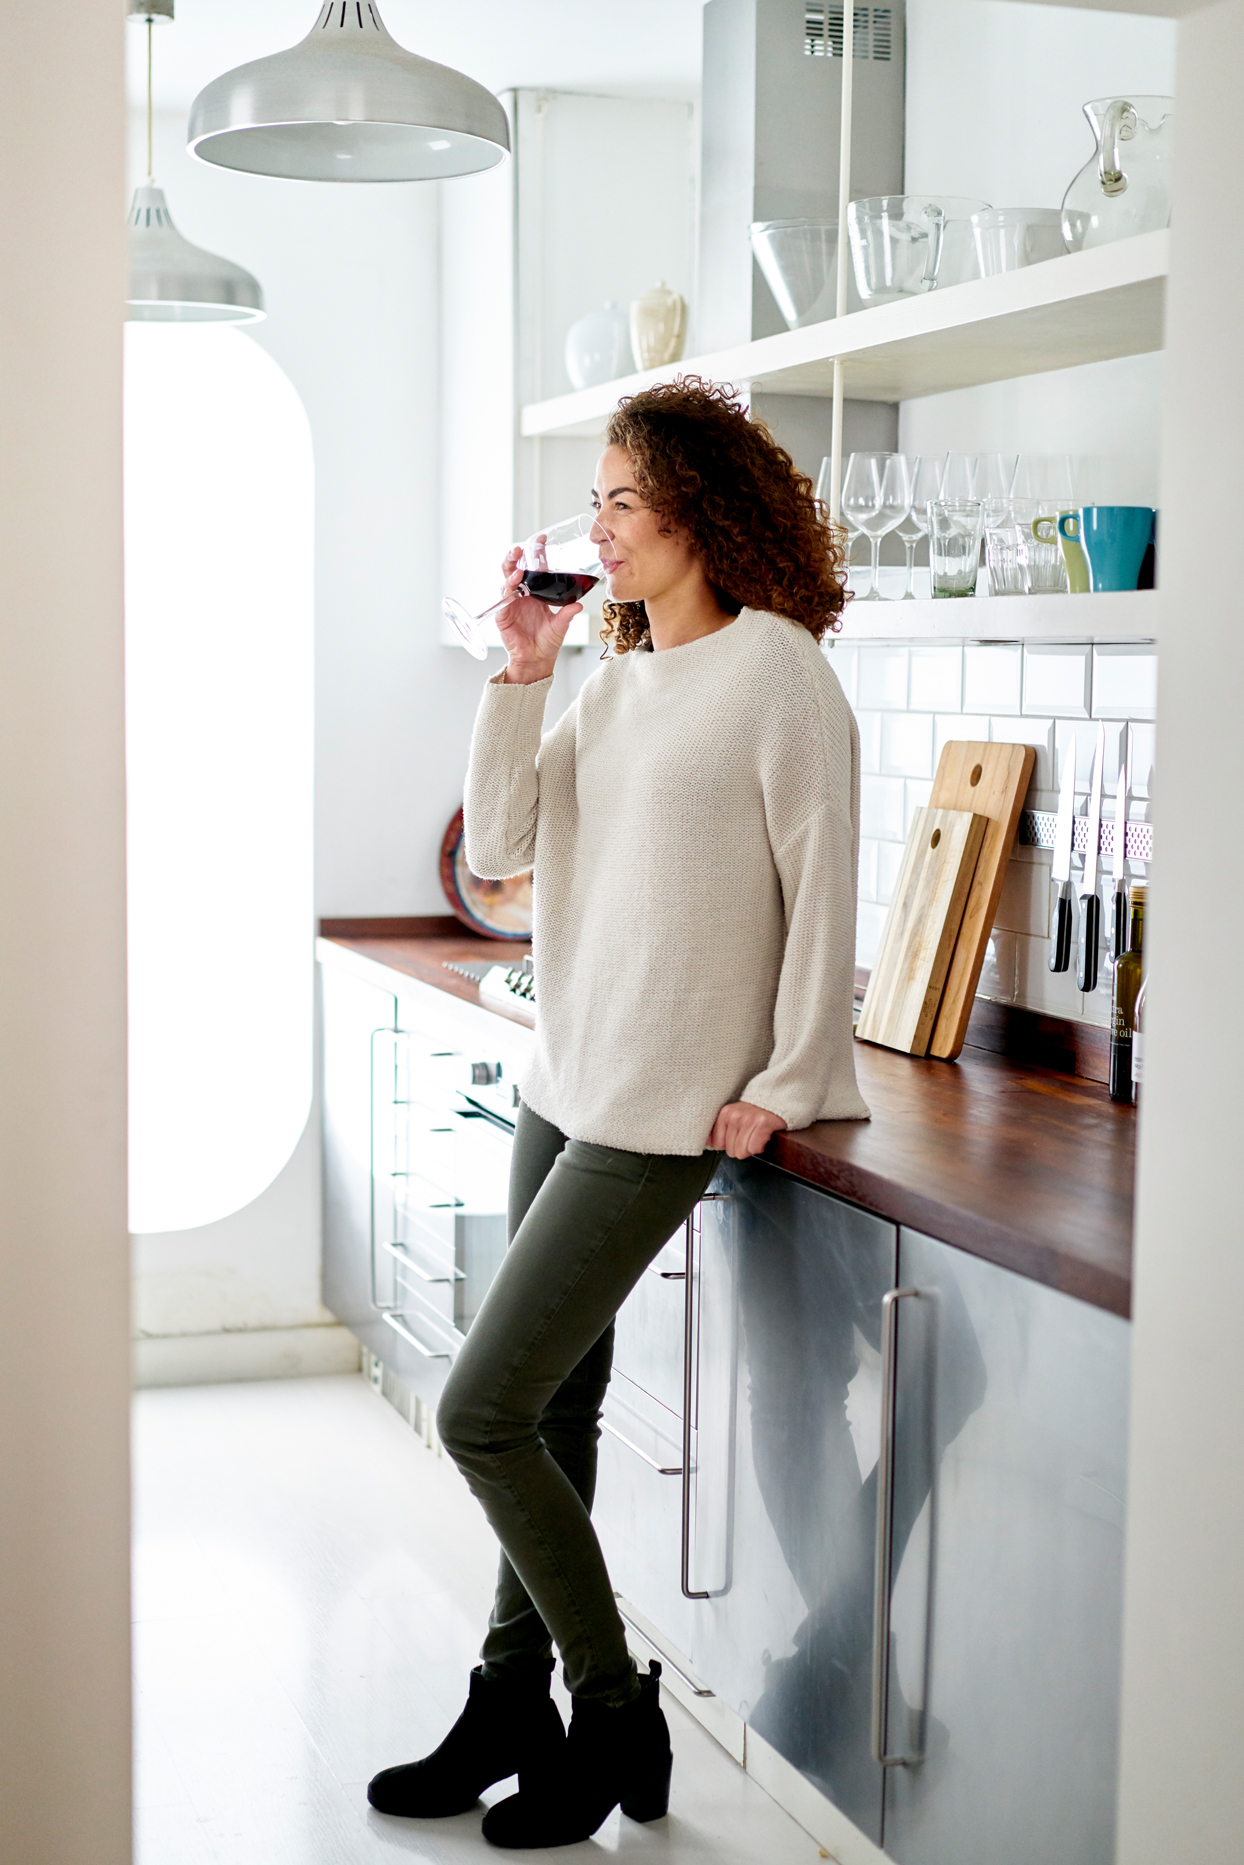 woman standing in kitchen drinking red wine leaning on the counter